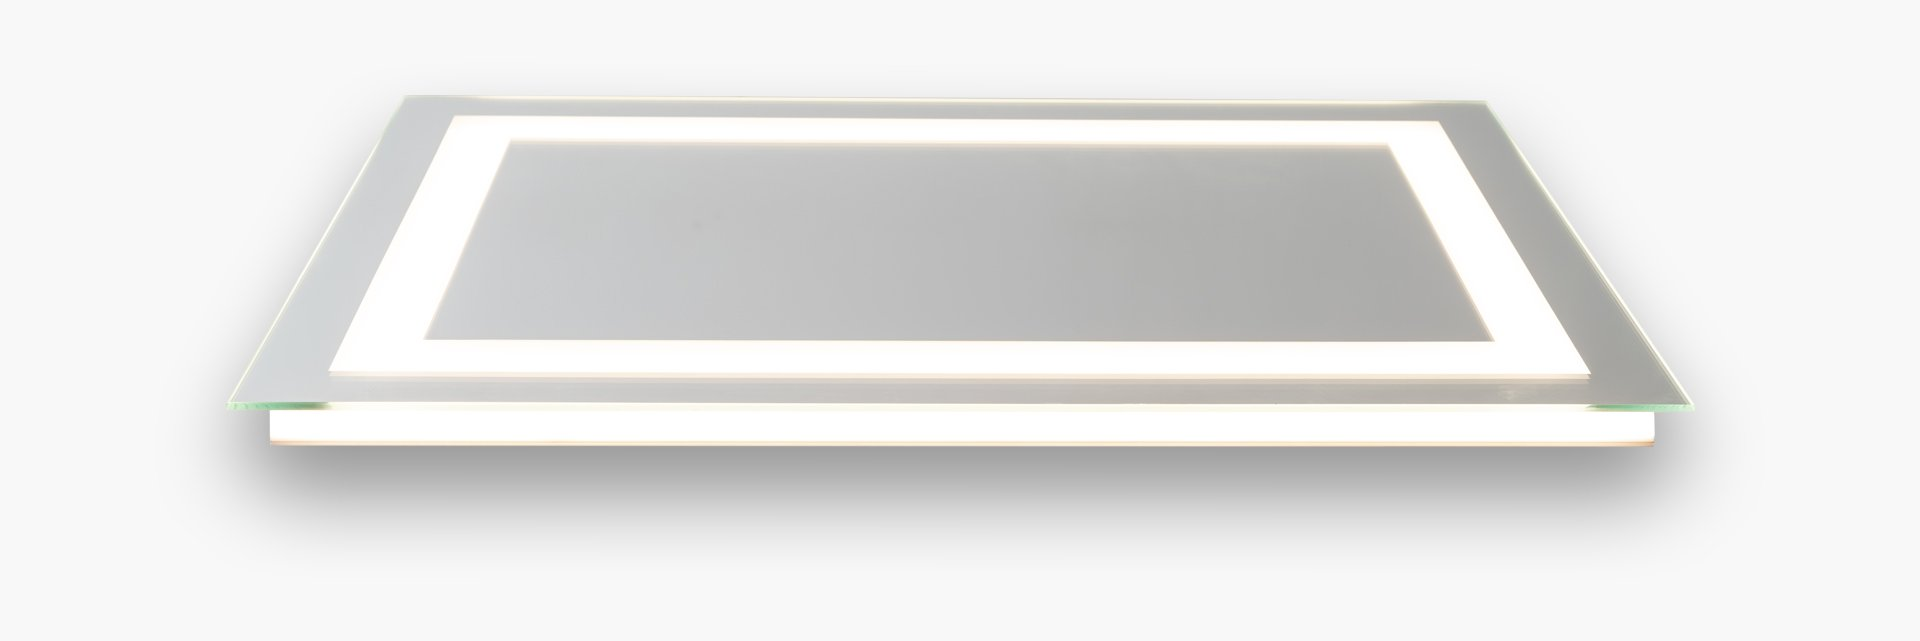 Side view of the Matrix Mirrors L1 model LED mirror. At this angle, the mirror is laid on its back - parallel to the ground. The direct LEDs are inset and on. The mirrors indirect backlight is also on.